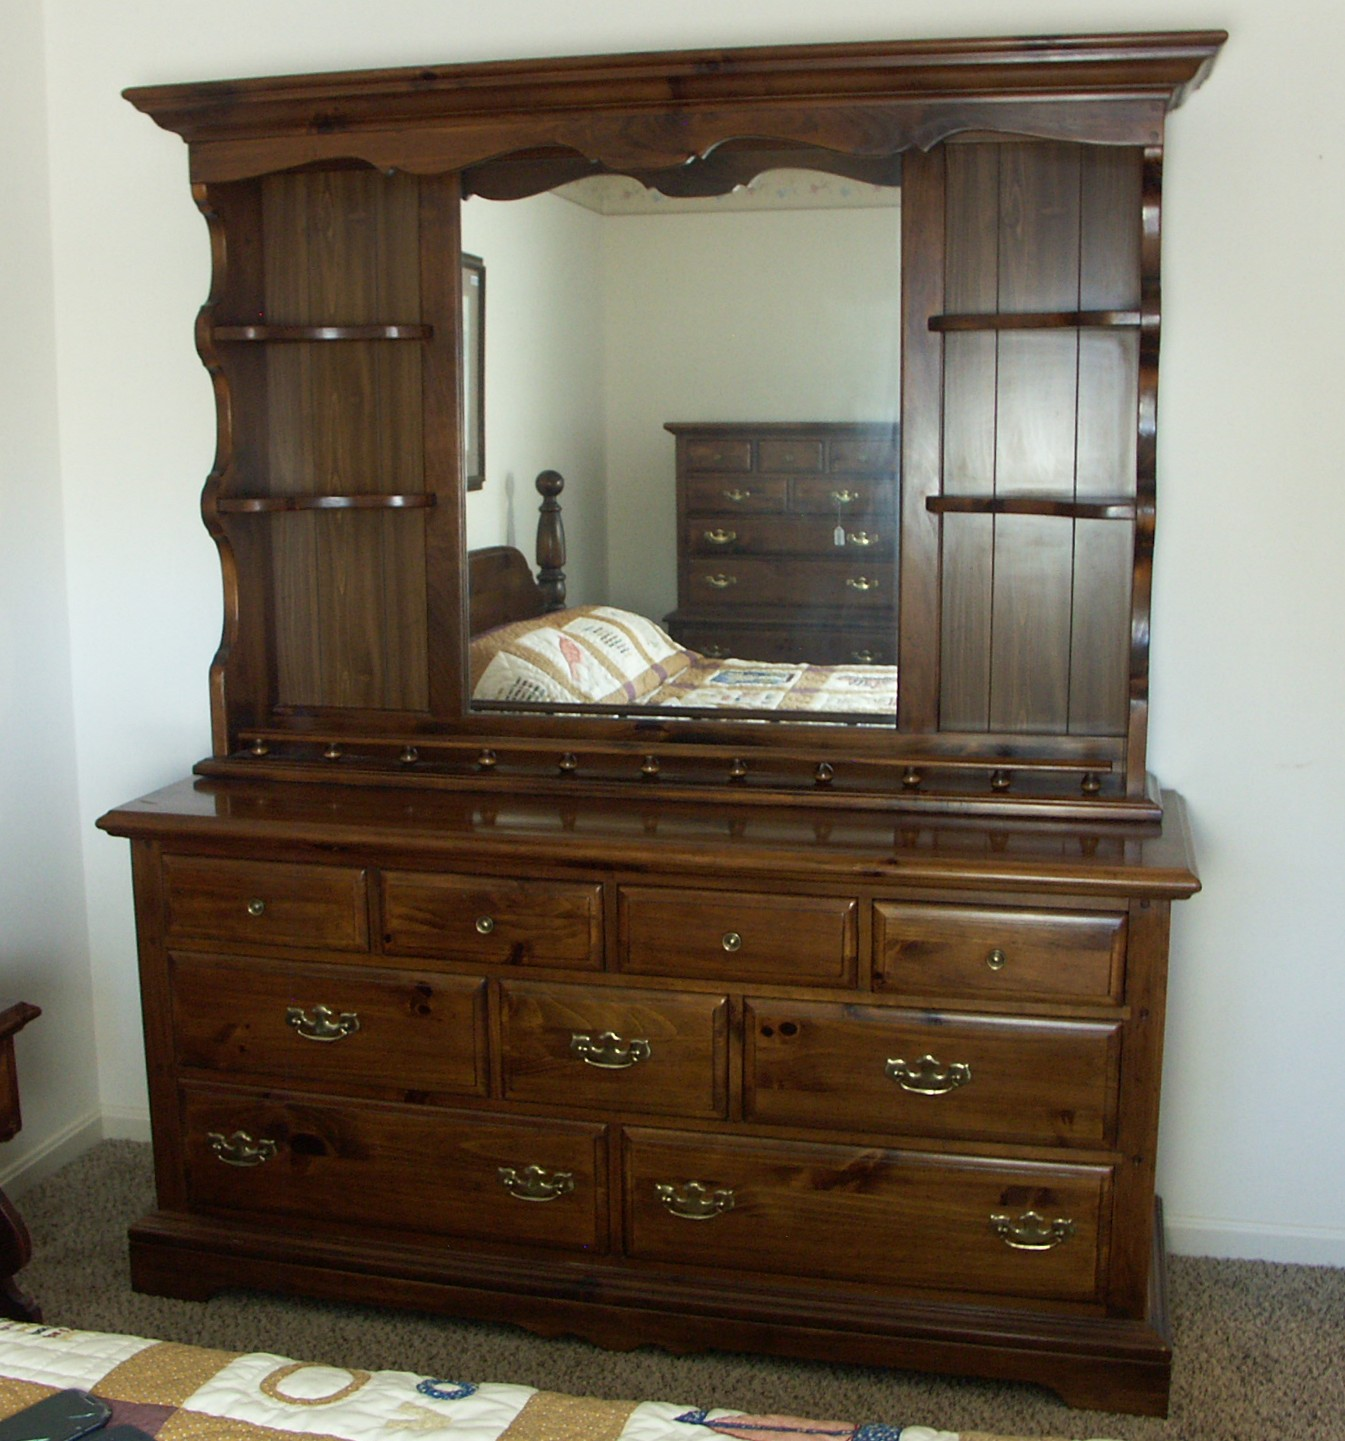 dresser with hutch mirror painted large kling colonial knotty pine dresser with mirror hutch ebth